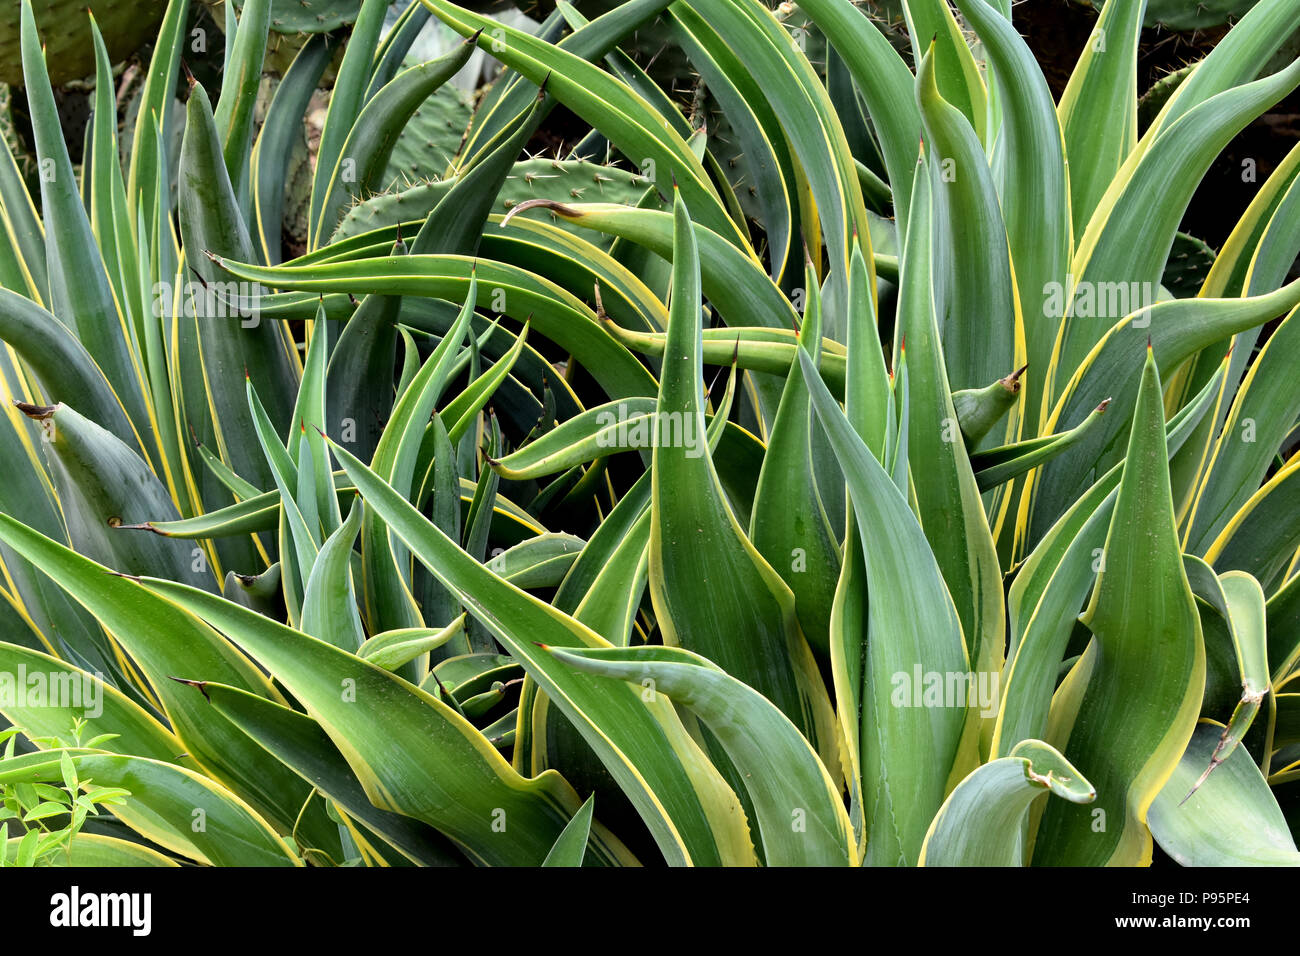 Image Of Succulent Plant Variegated Dwarf Agave Stock Photo